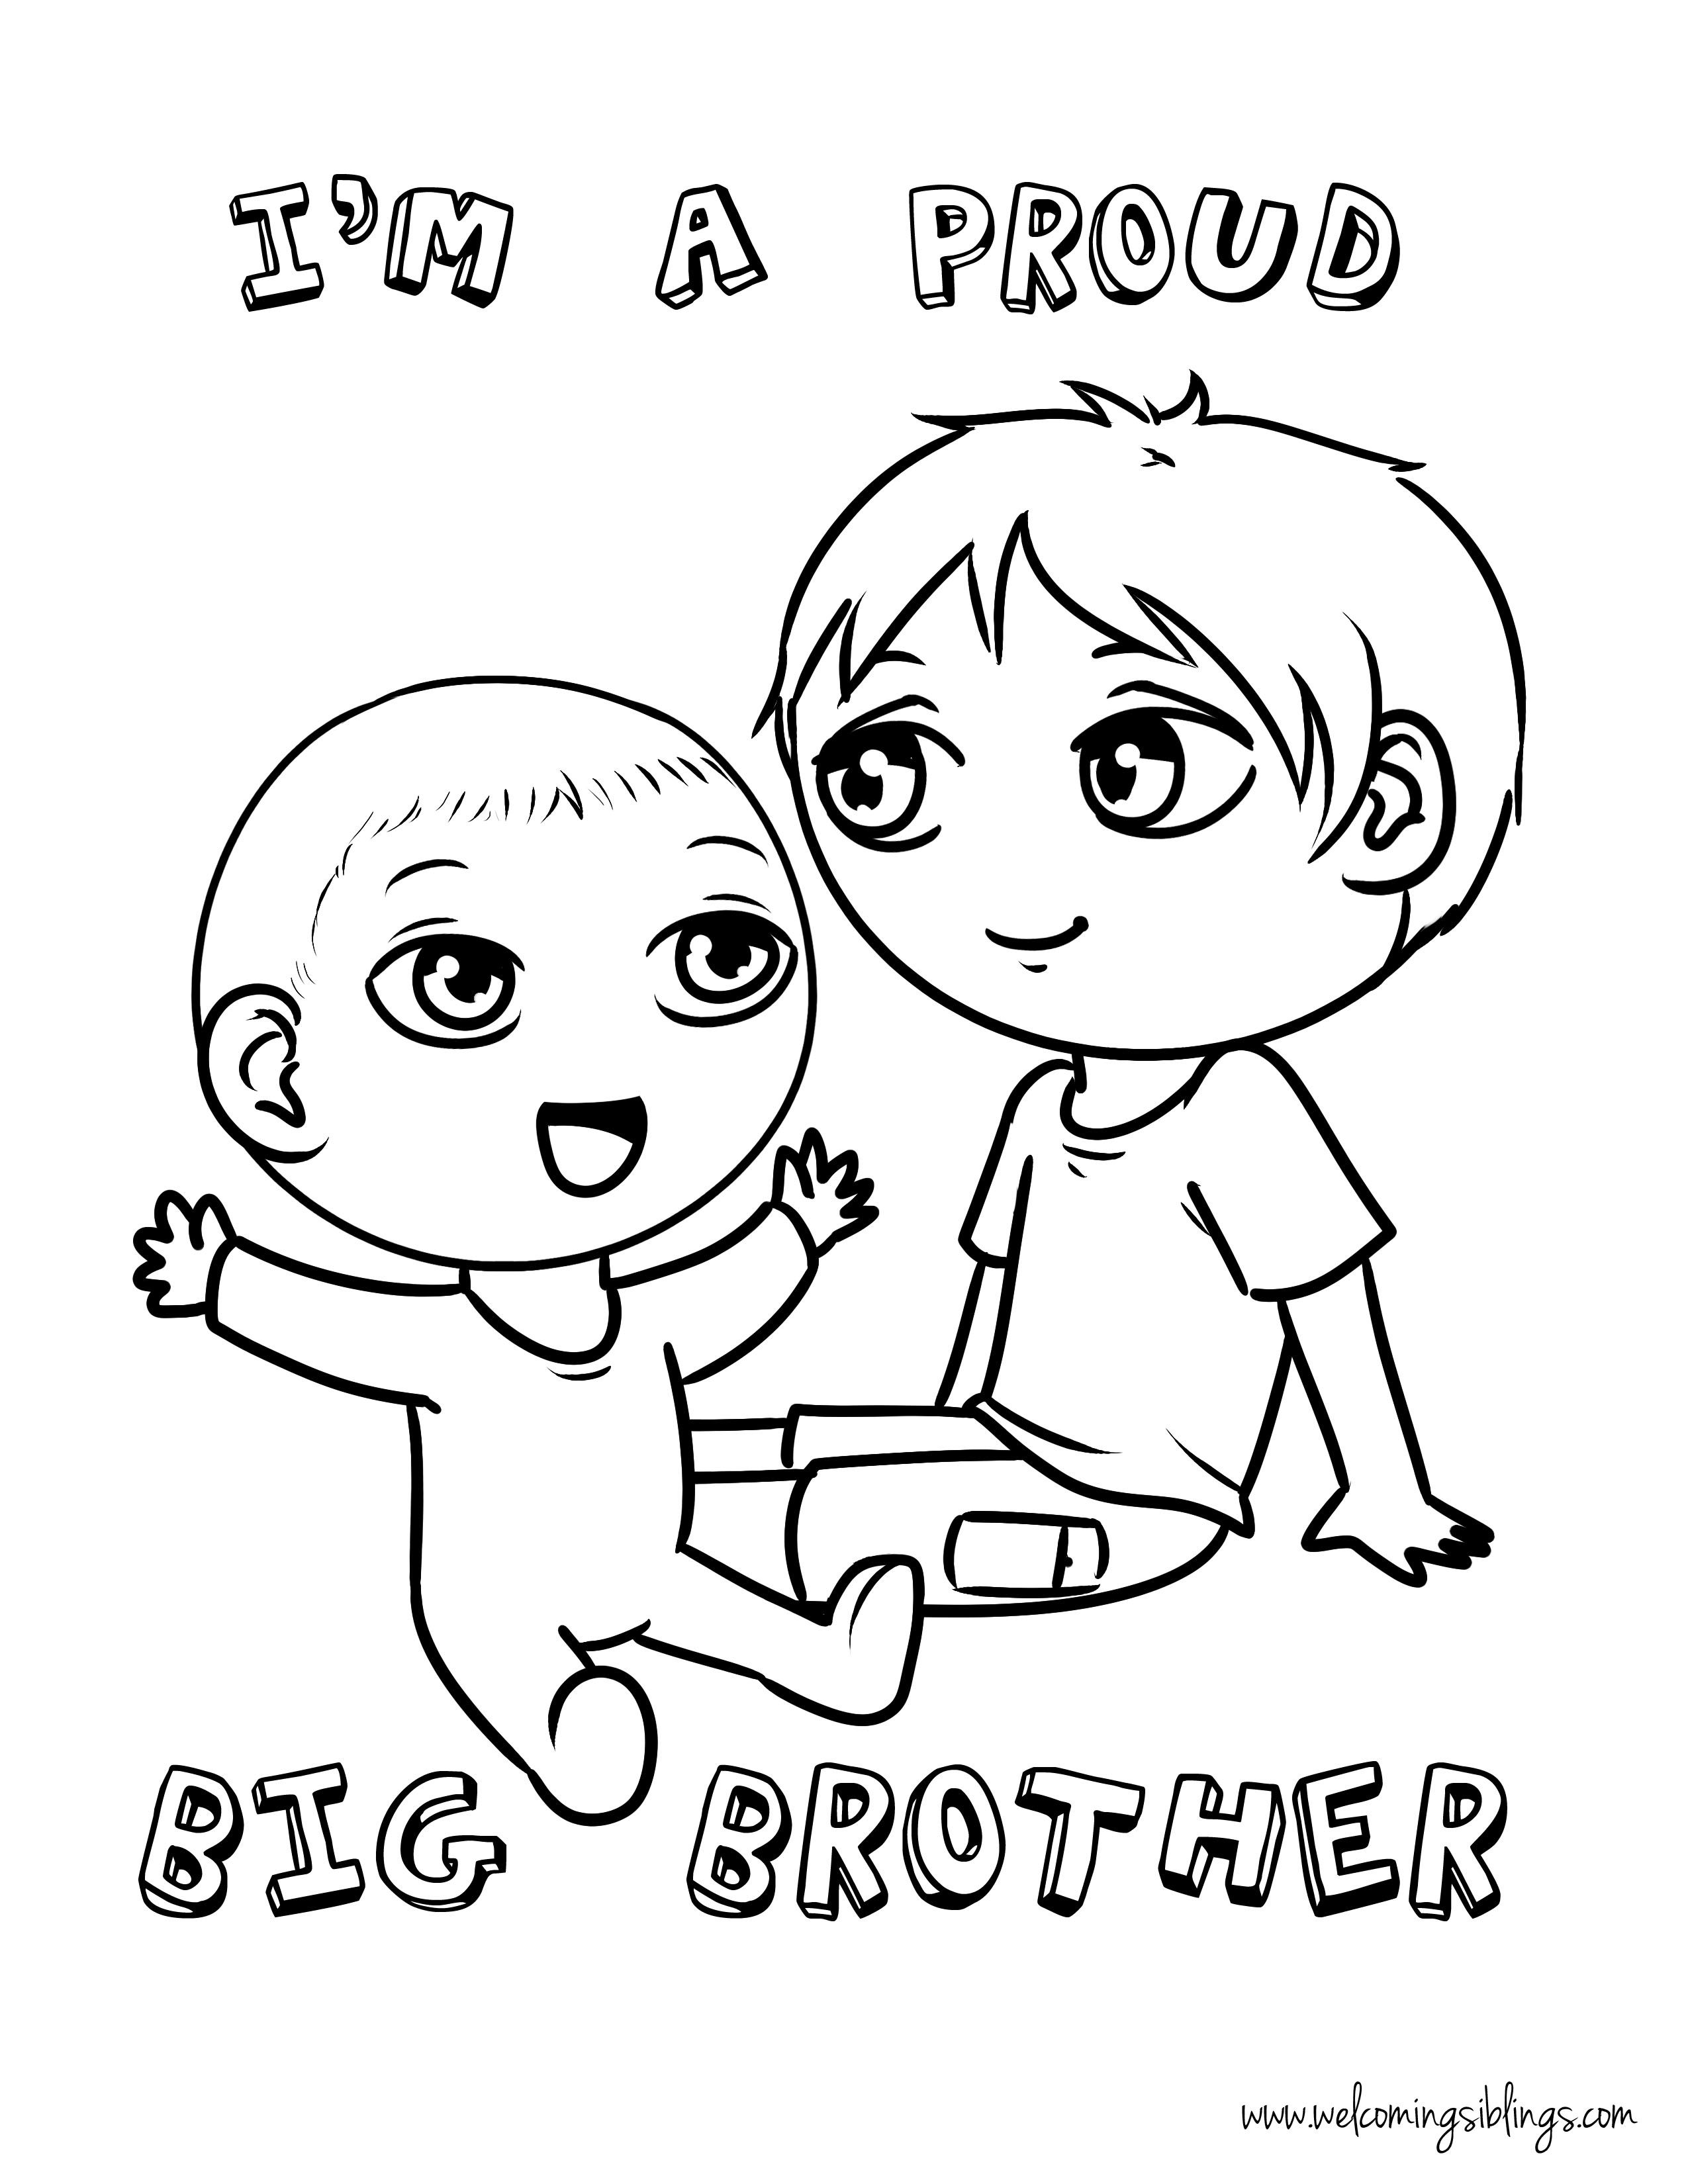 Free quot Big Brother quot Coloring Page